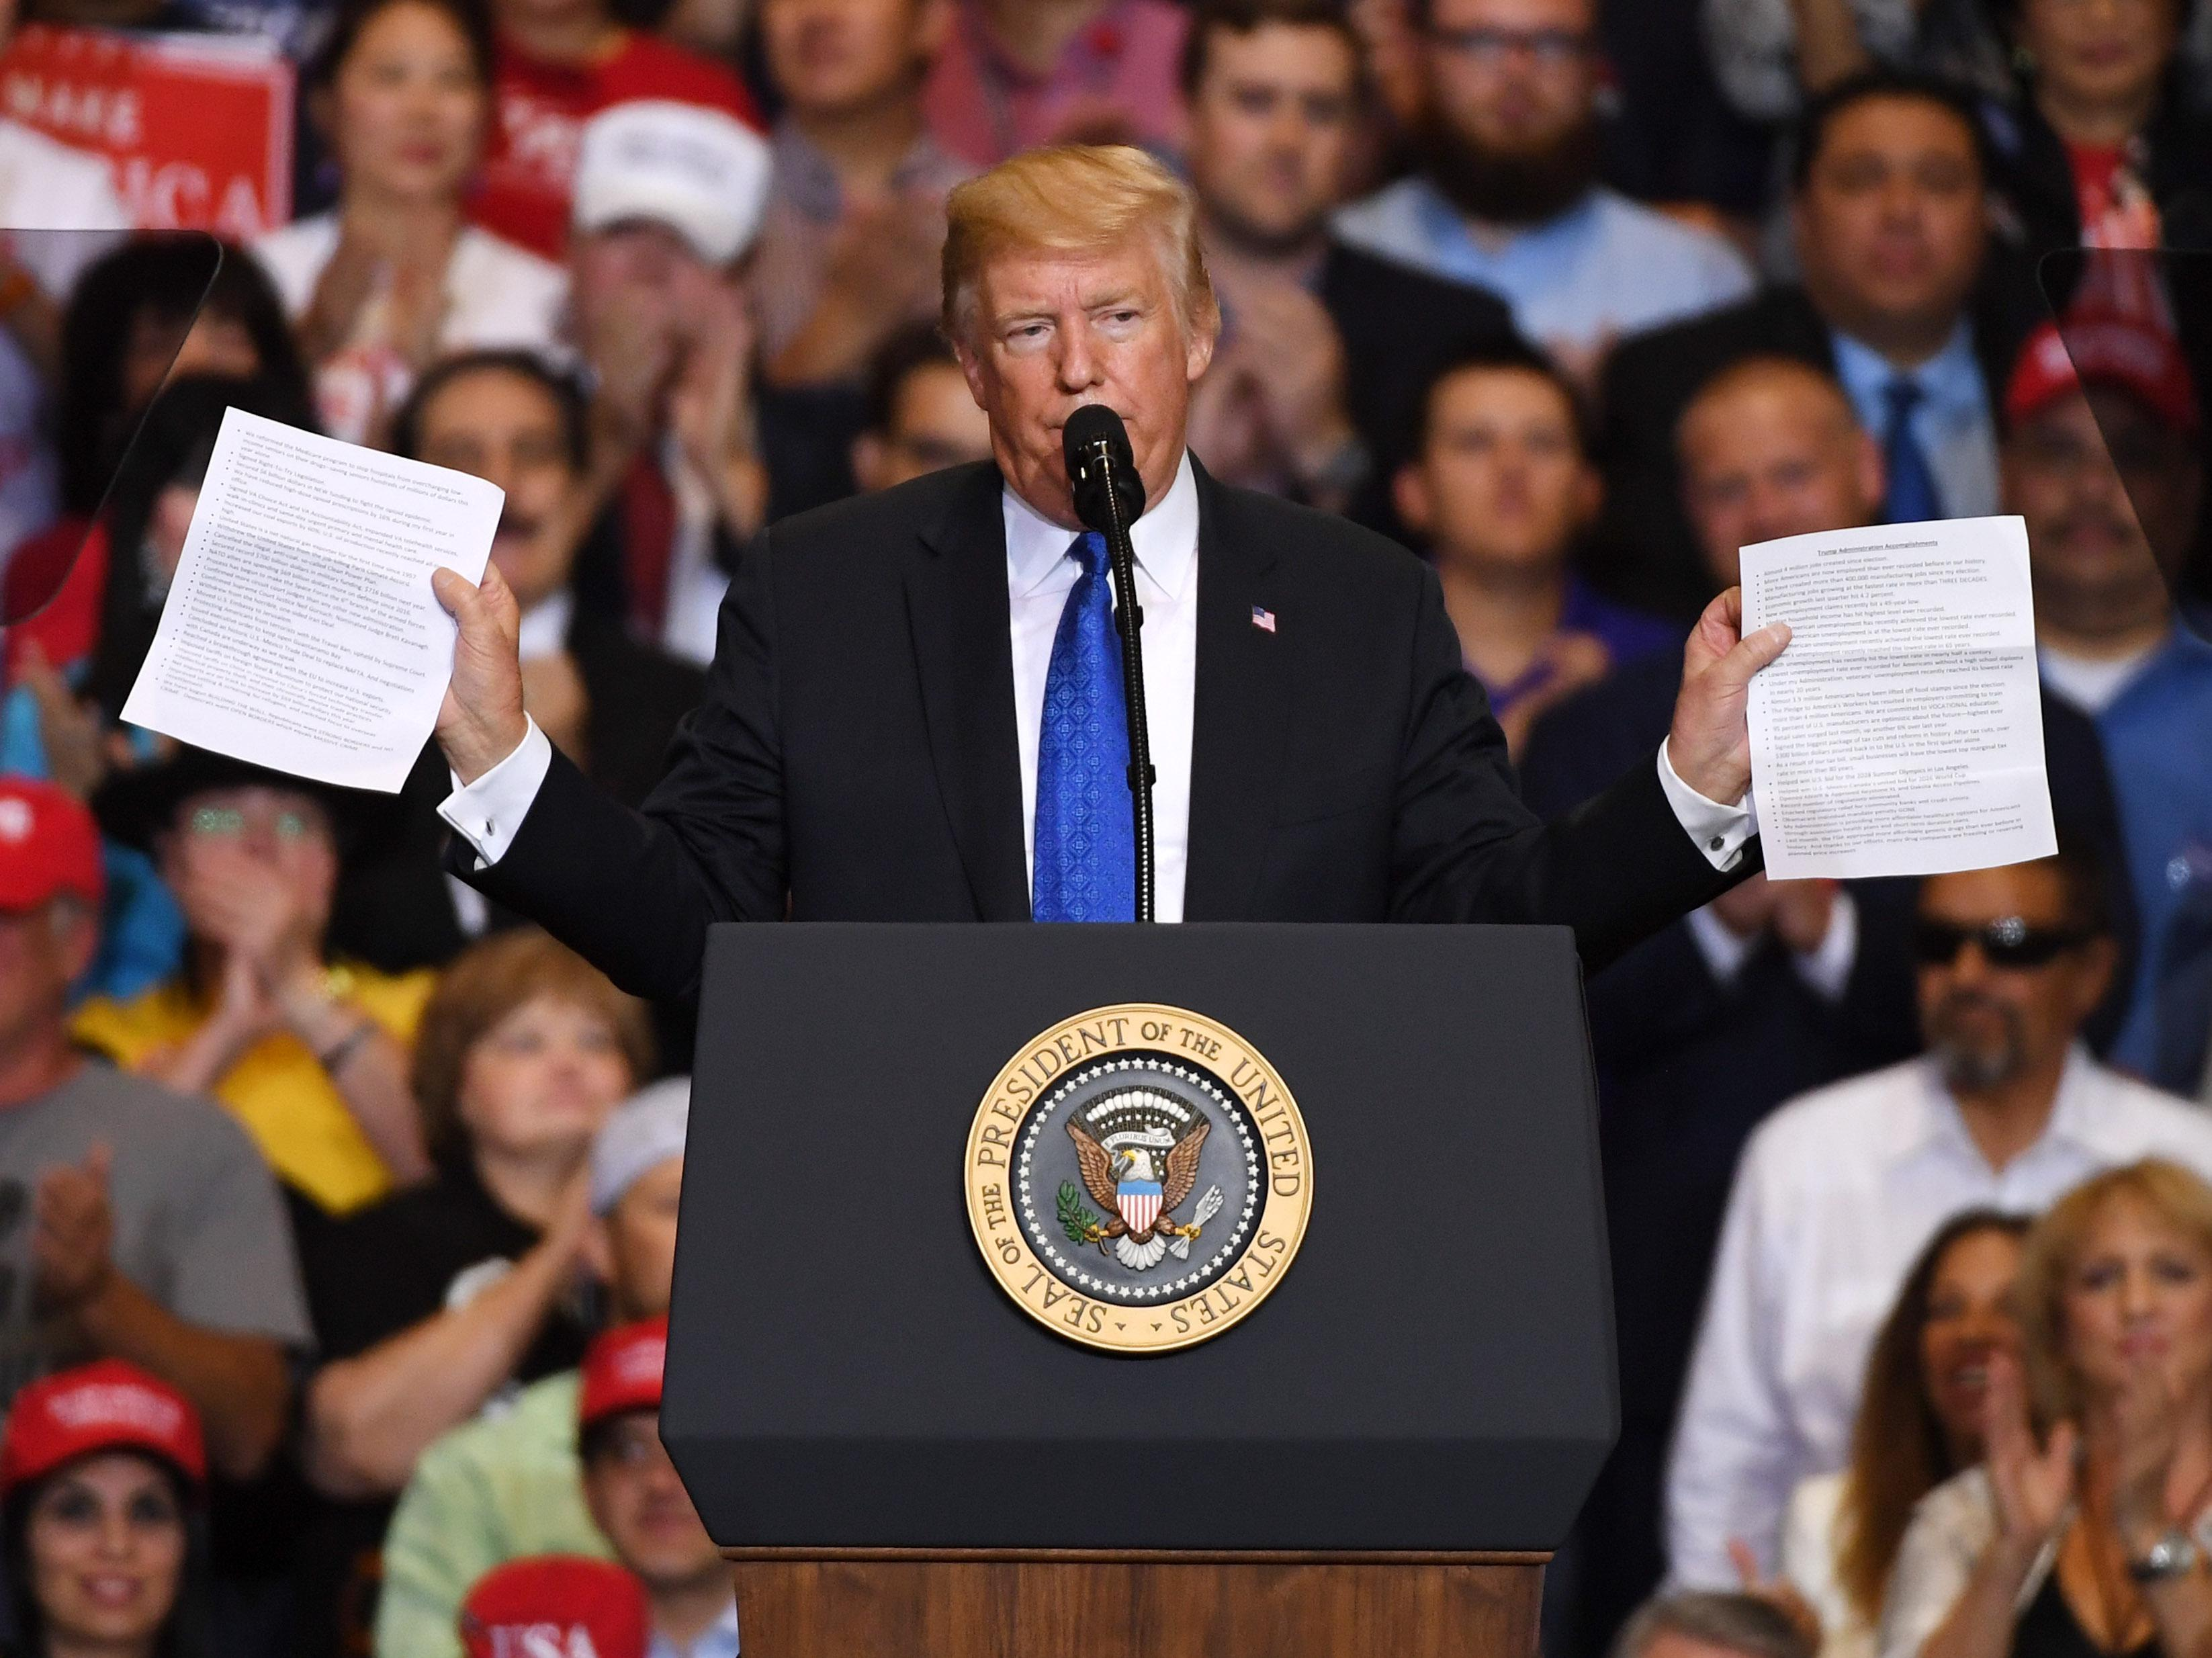 President Donald Trump holds up two sheets of paper while speaking behind the podium during a campaign rally at the Las Vegas Convention Center on Sept. 20, 2018.